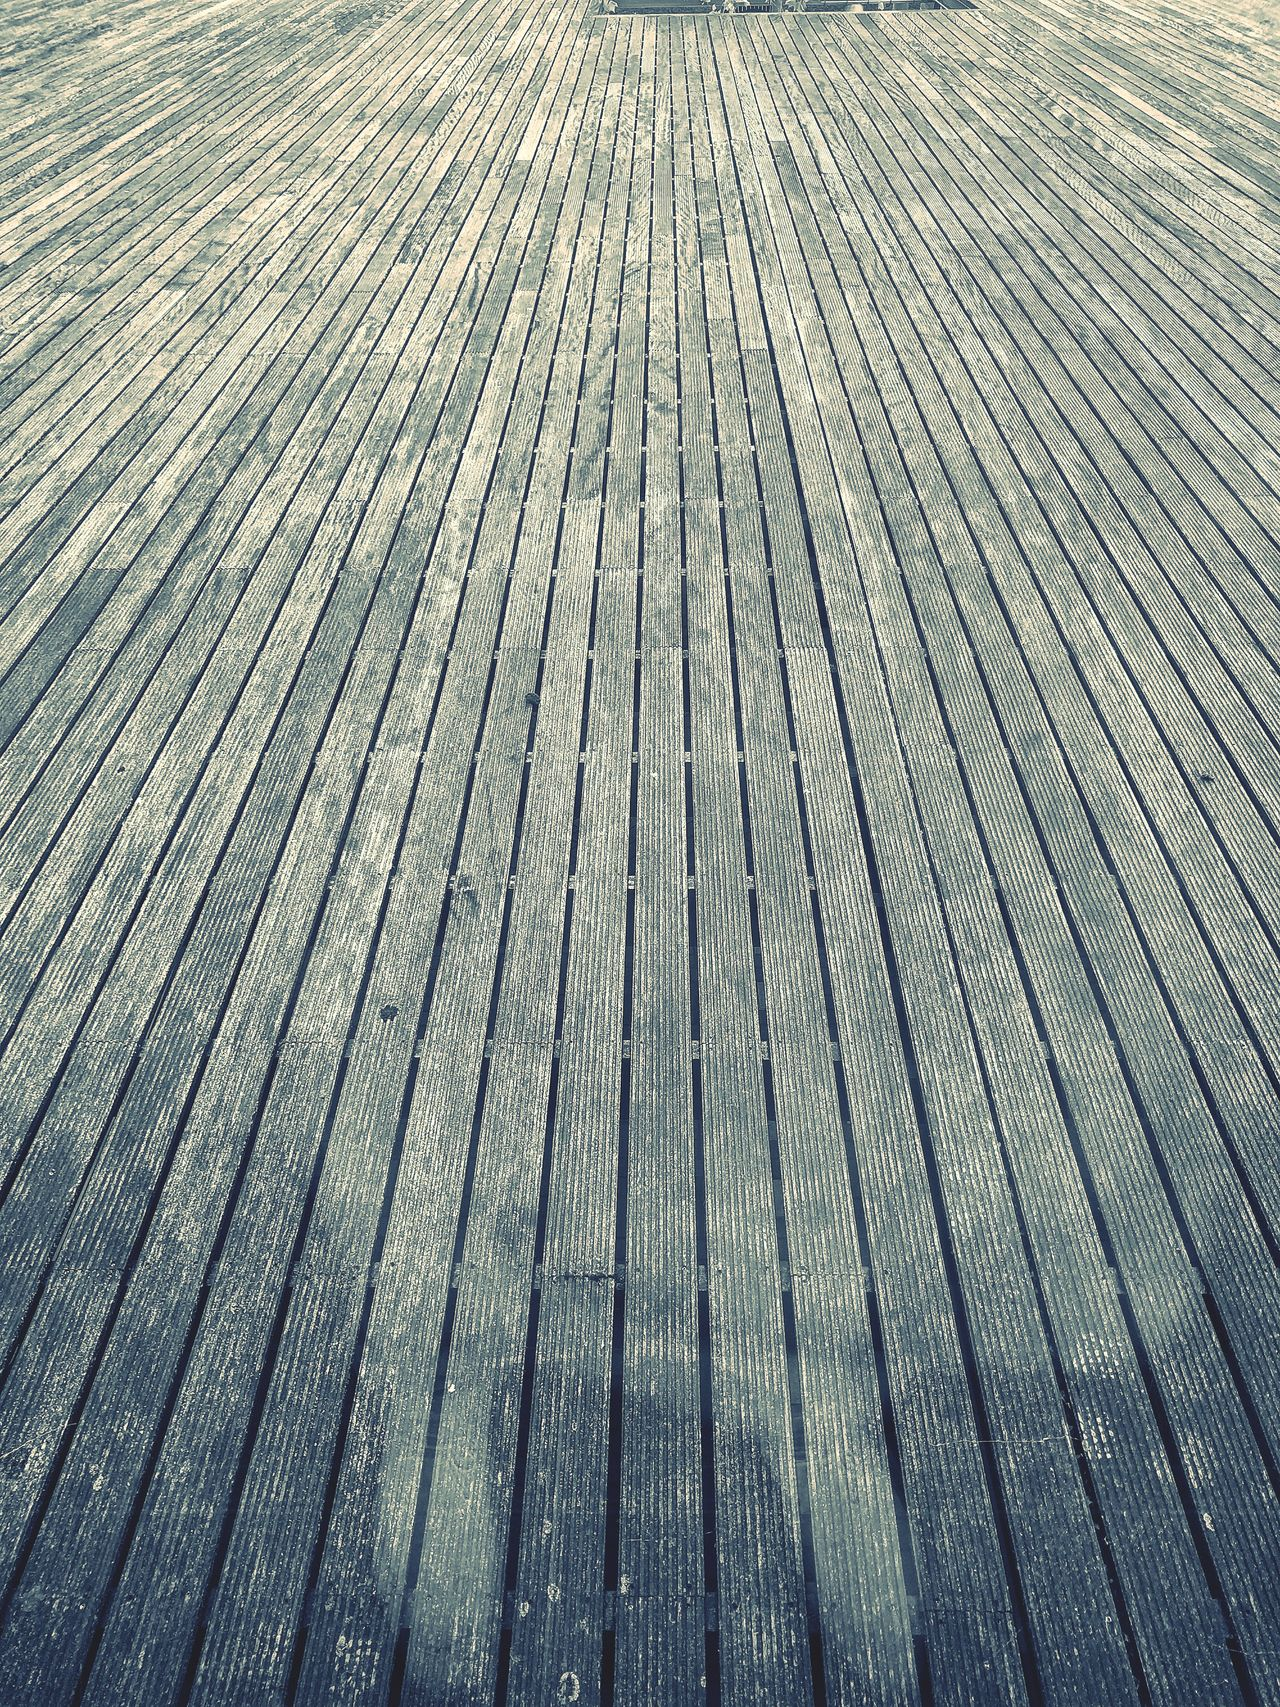 Full Frame Backgrounds Pattern Day Low Angle View No People Nature Outdoors Beauty In Nature Close-up Boardwalk Photography Boardwalk Boardway Boardwalks Boardwalk Scapes Weathered Weather Wood Weather Board Weathered Wood